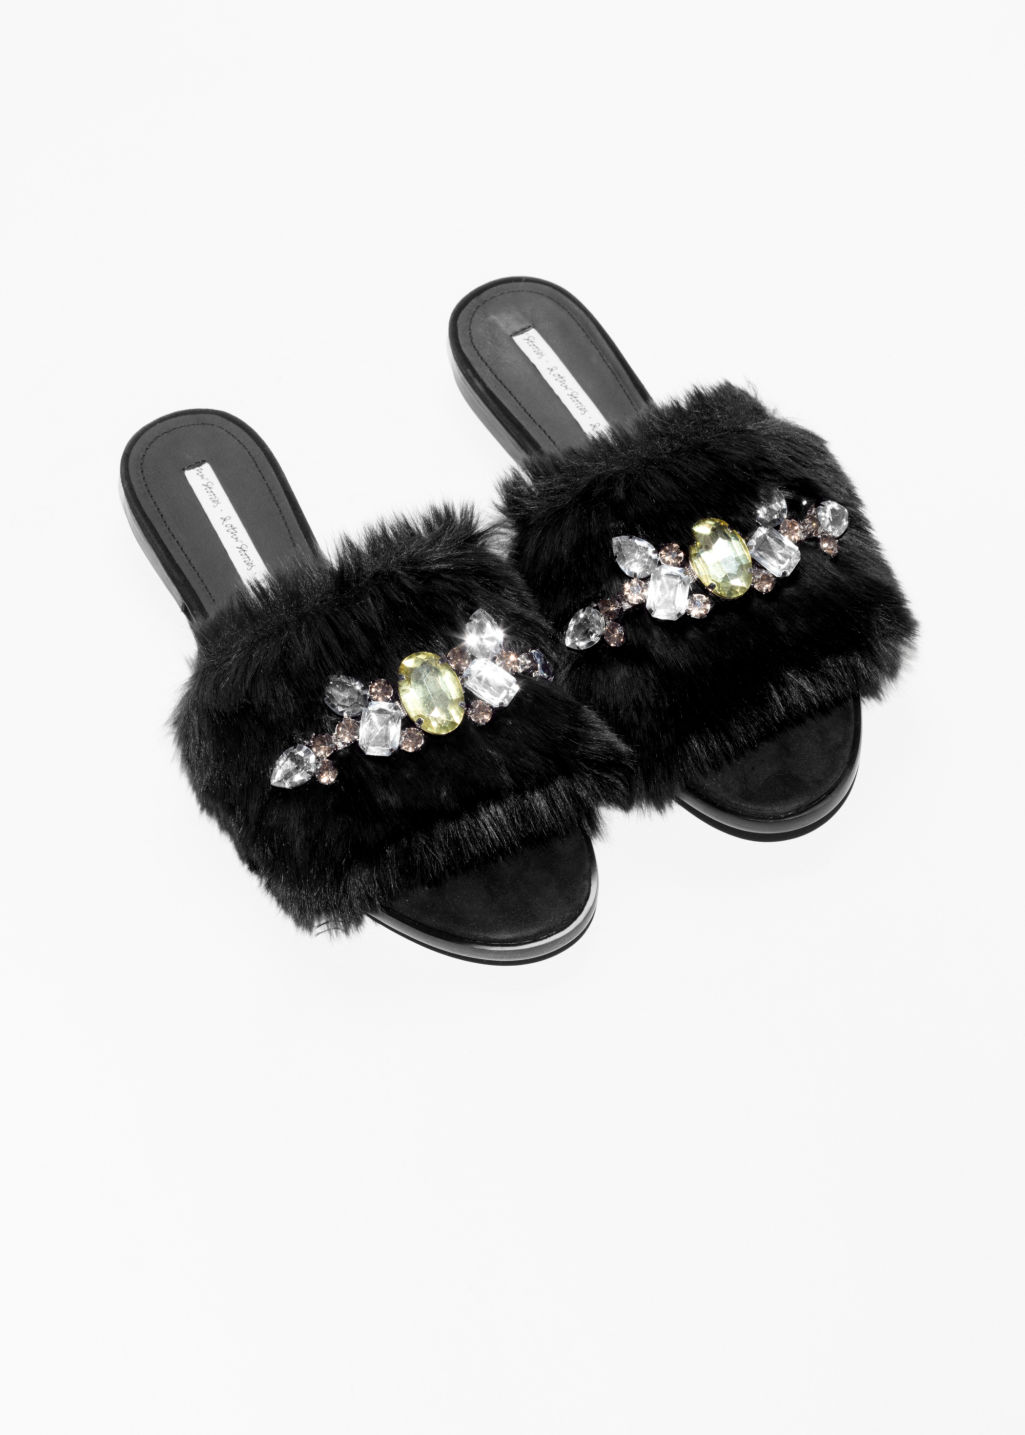 & OTHER STORIES Gemstone Faux Fur Slippers